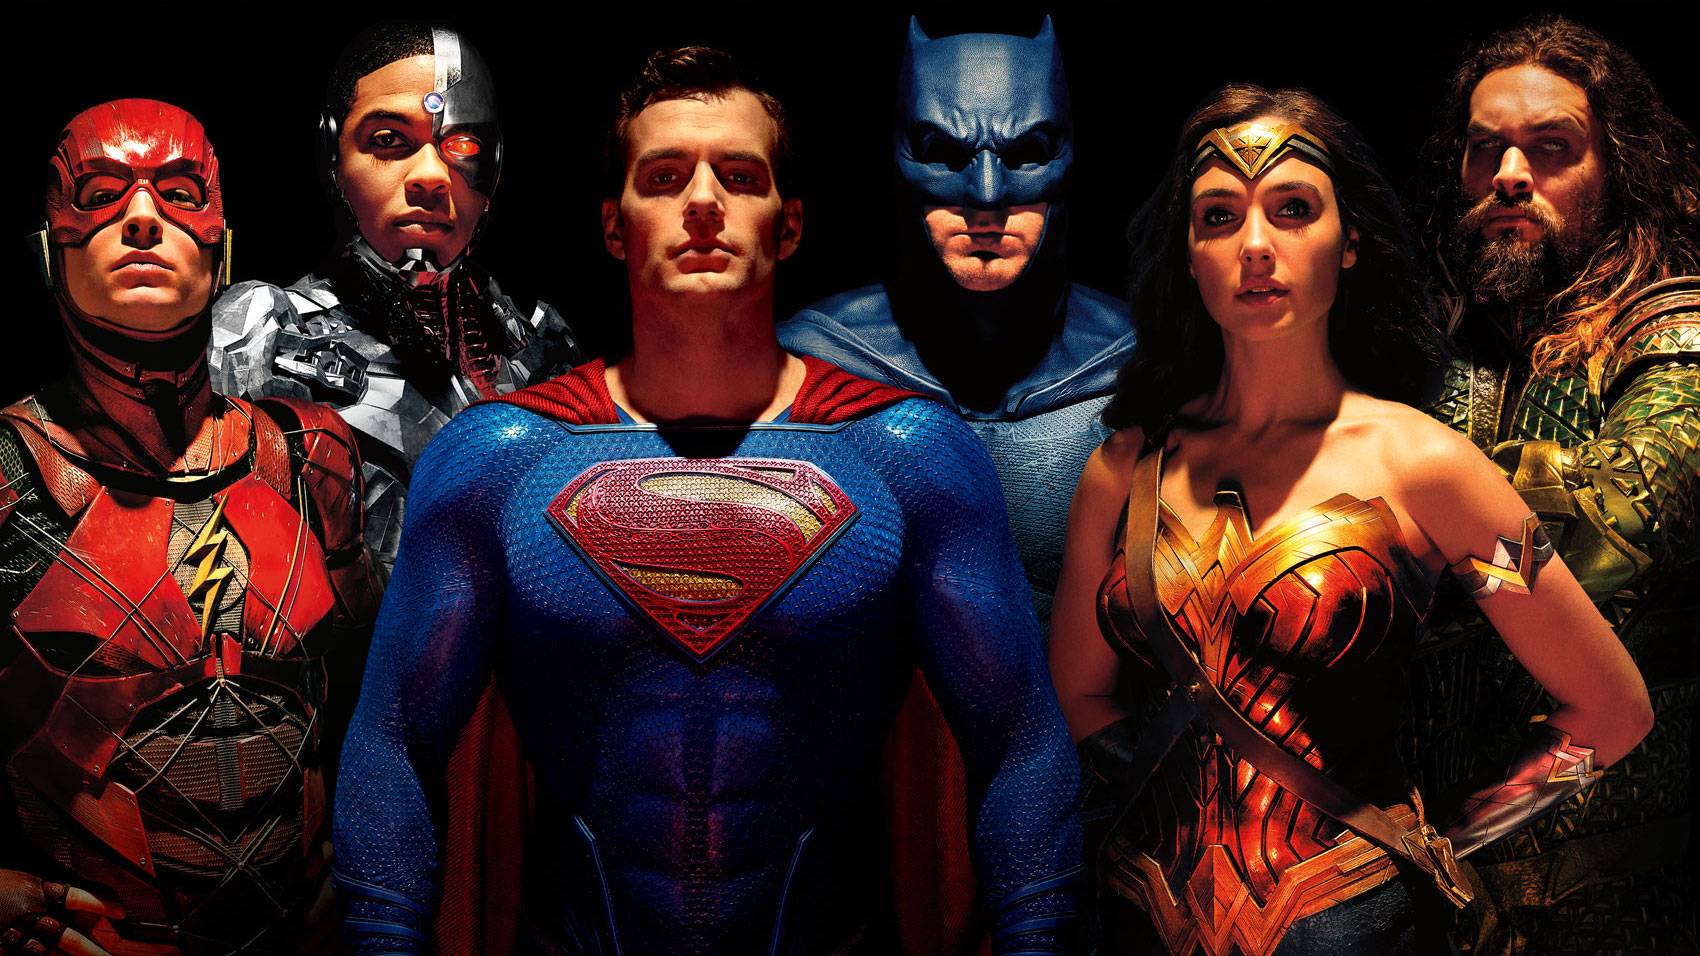 Justice League Is Now Officially DC's Least Successful Film